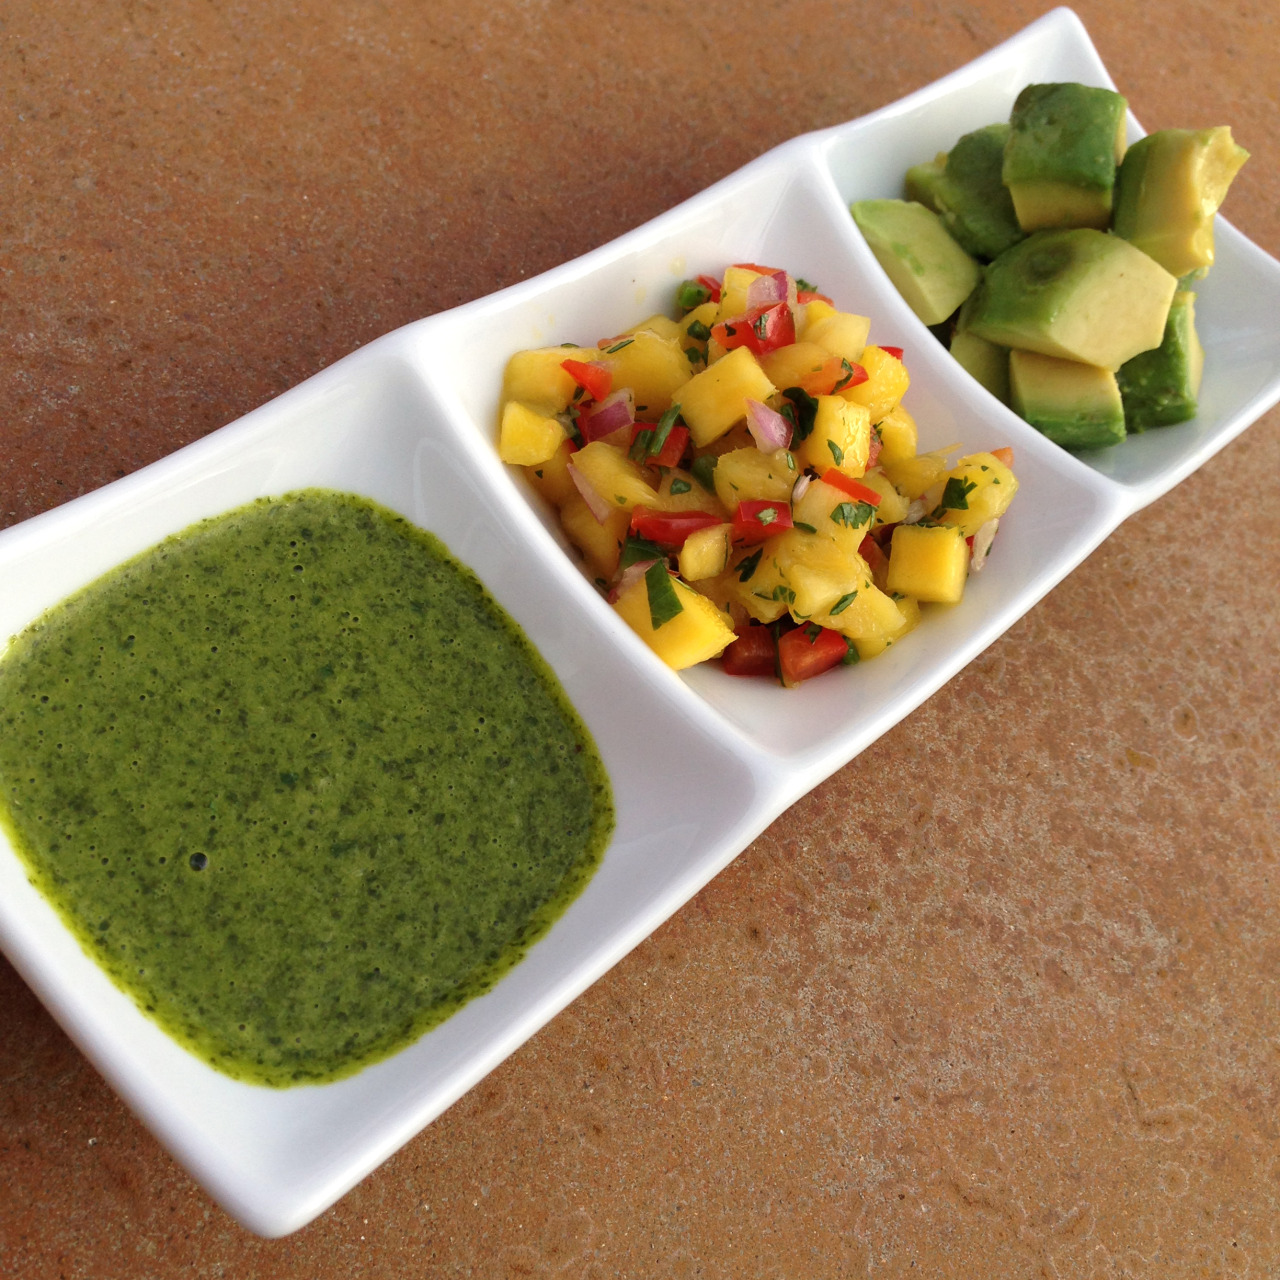 Cilantro-Lime Vinaigrette, Mango Salsa, and Avocado - The perfect toppings for Baked Fish Tacos!